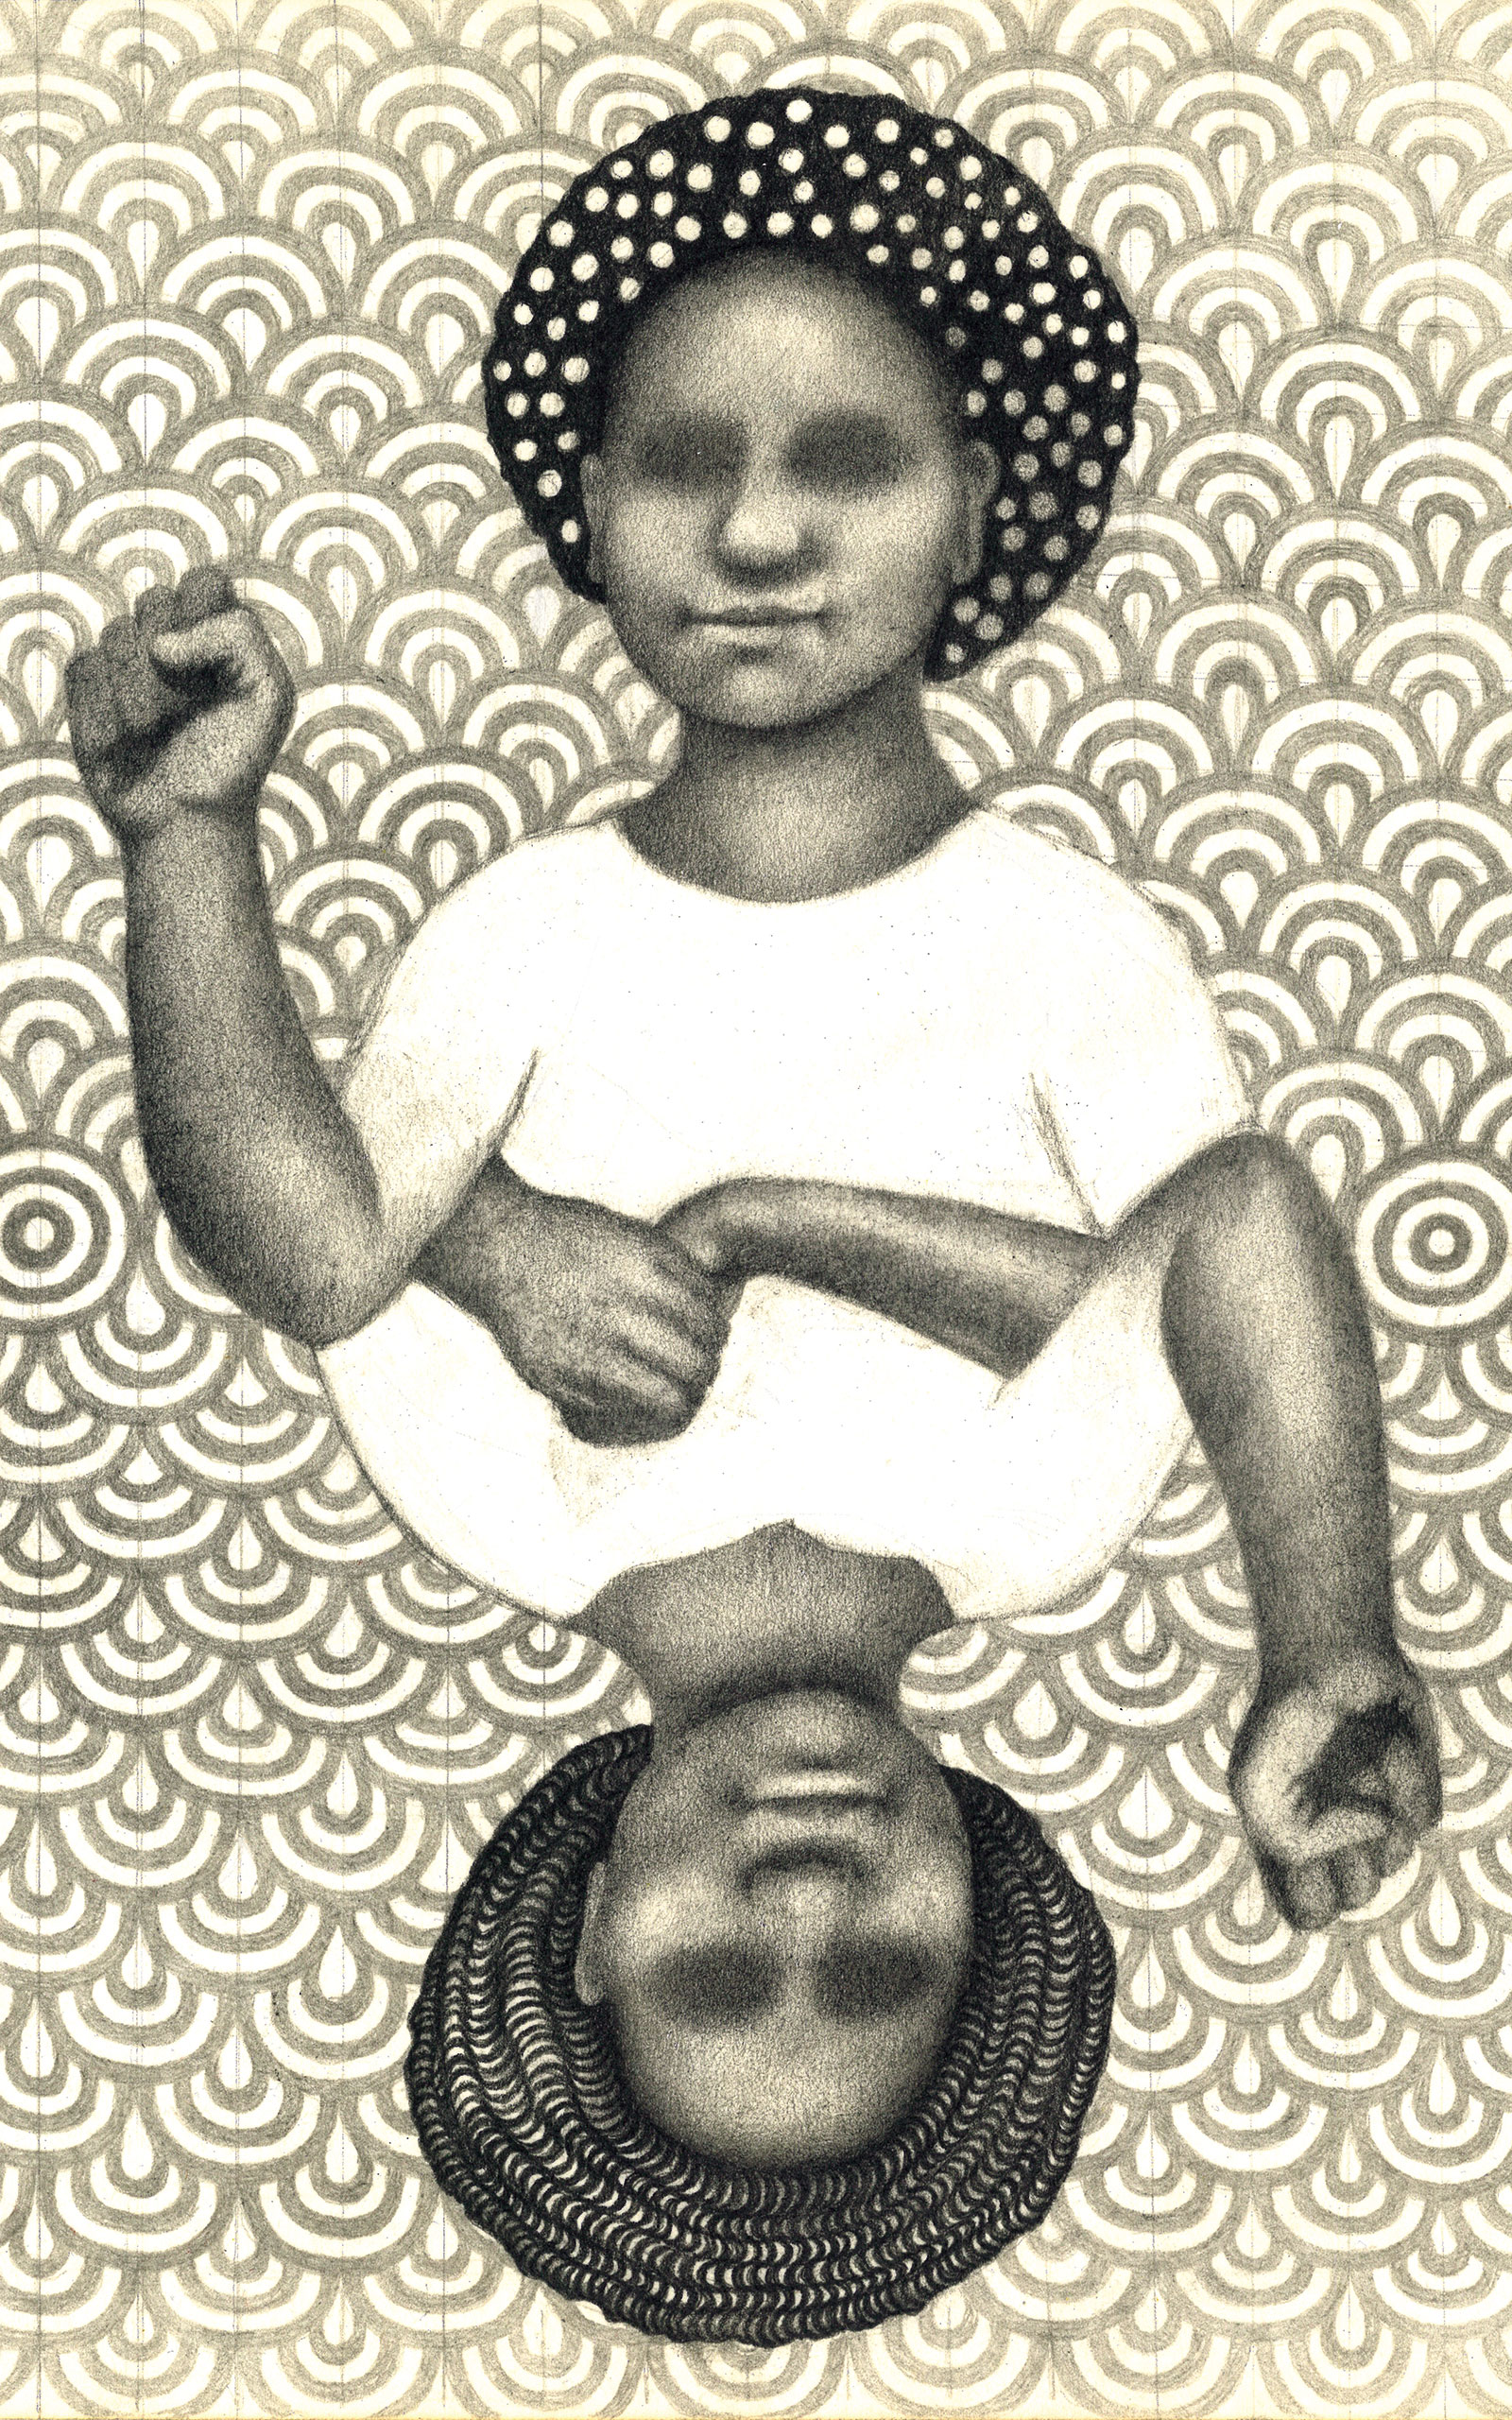 A black and white drawing centered on two identical Black figures, each shown waist up and with raised fists. The two figures, one upside down and the other right side up, are joined at the waist with their hands intertwining. The central image is on a background pattern of repeated gray rings and spirals